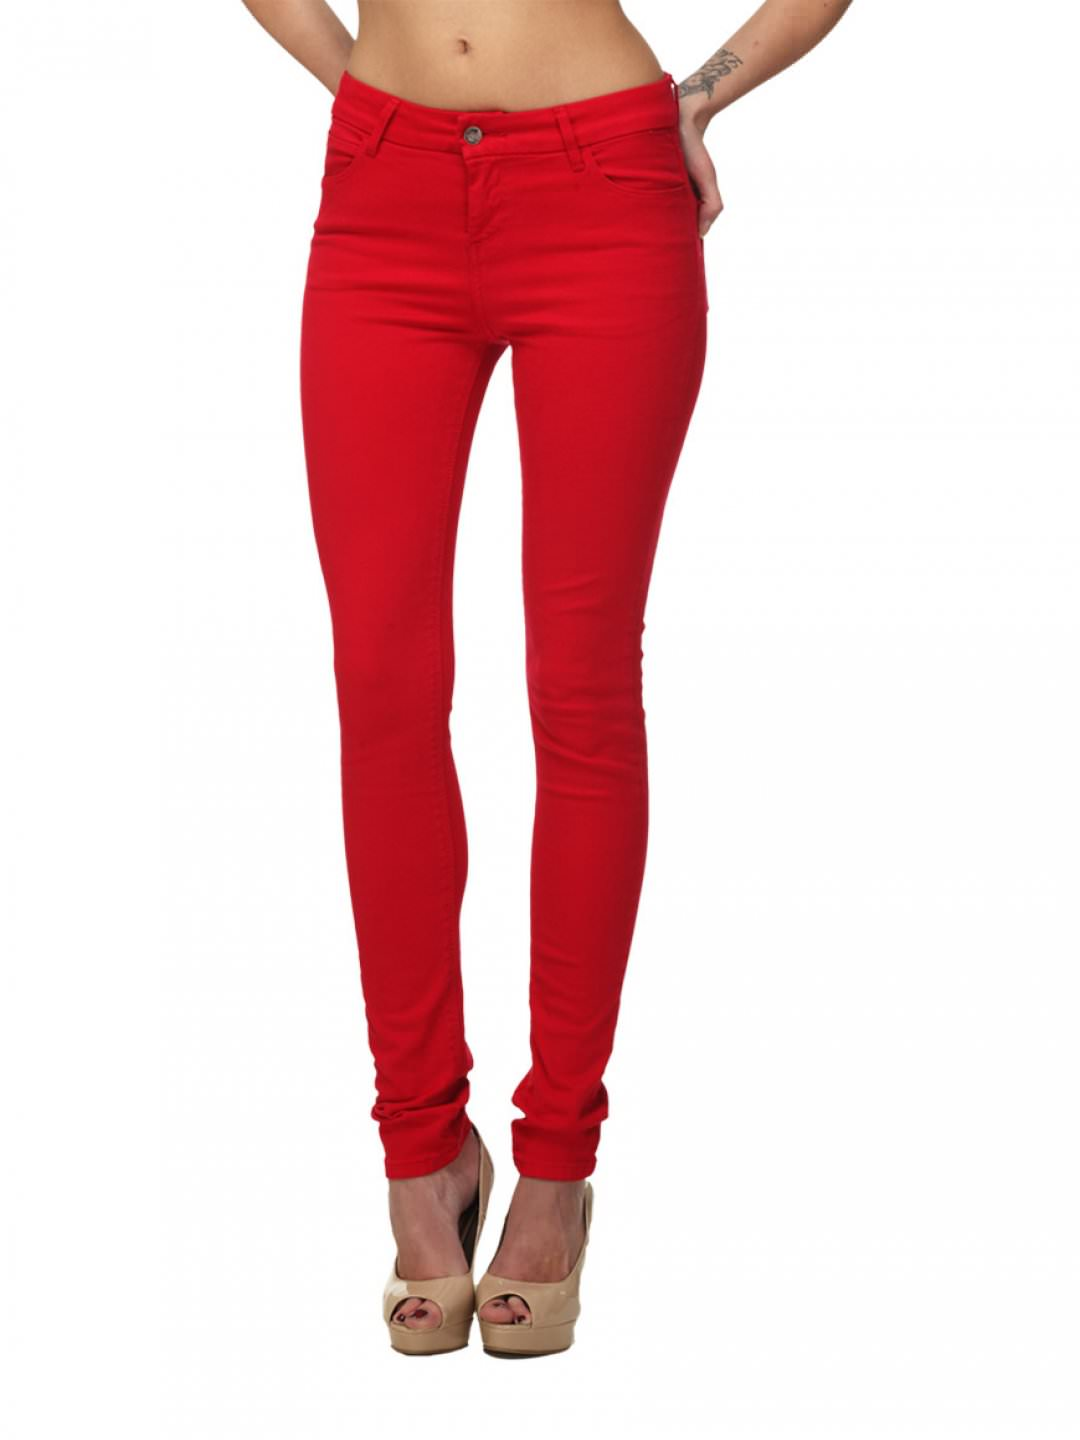 red jeans on the hunt OWPGAGA